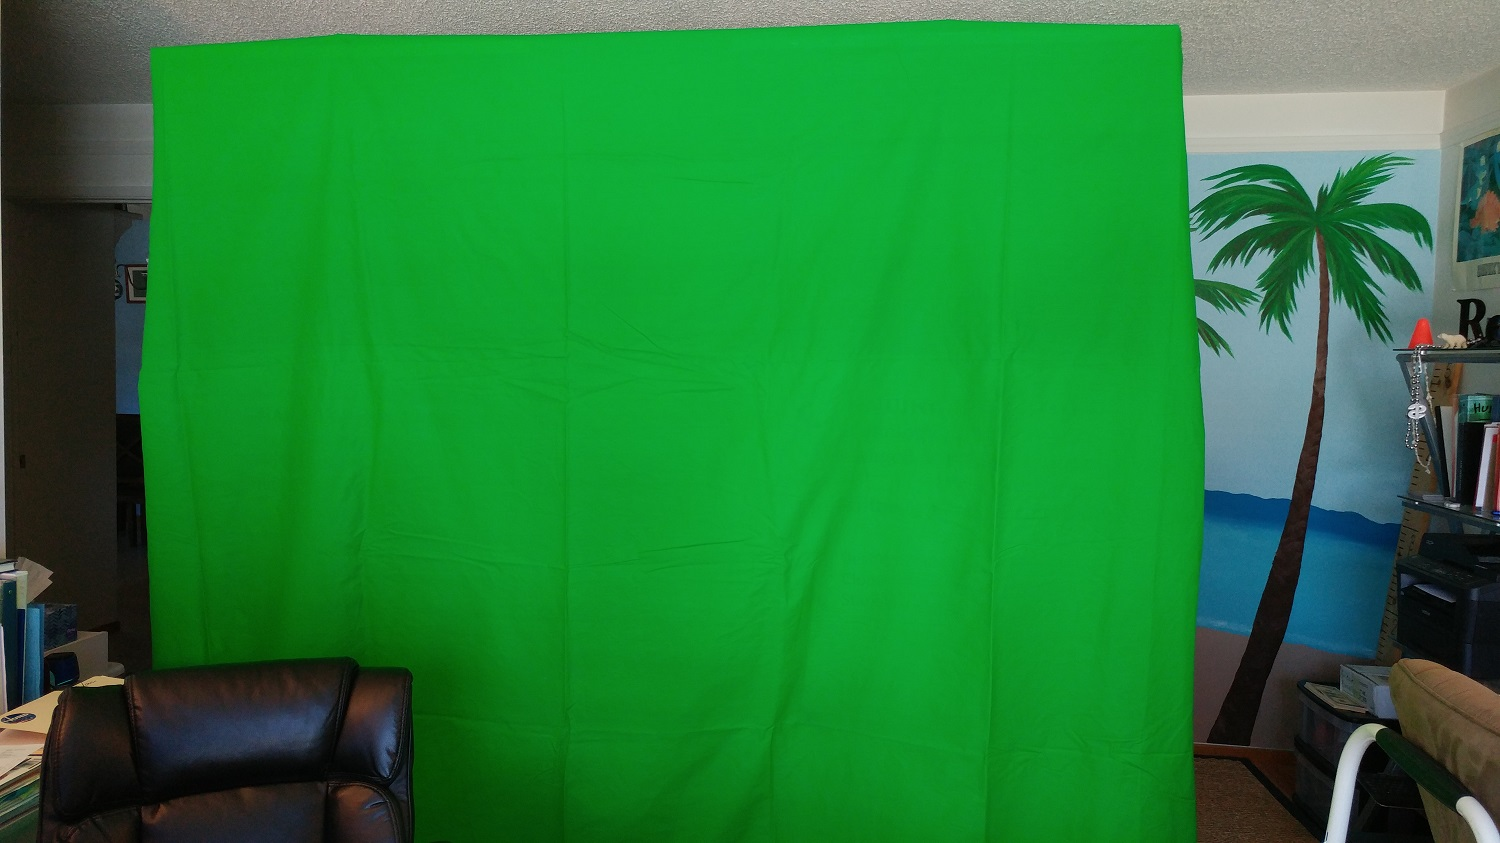 Consumer Electronics Gadgets How To Use Green Screen To Change Your Zoom Background